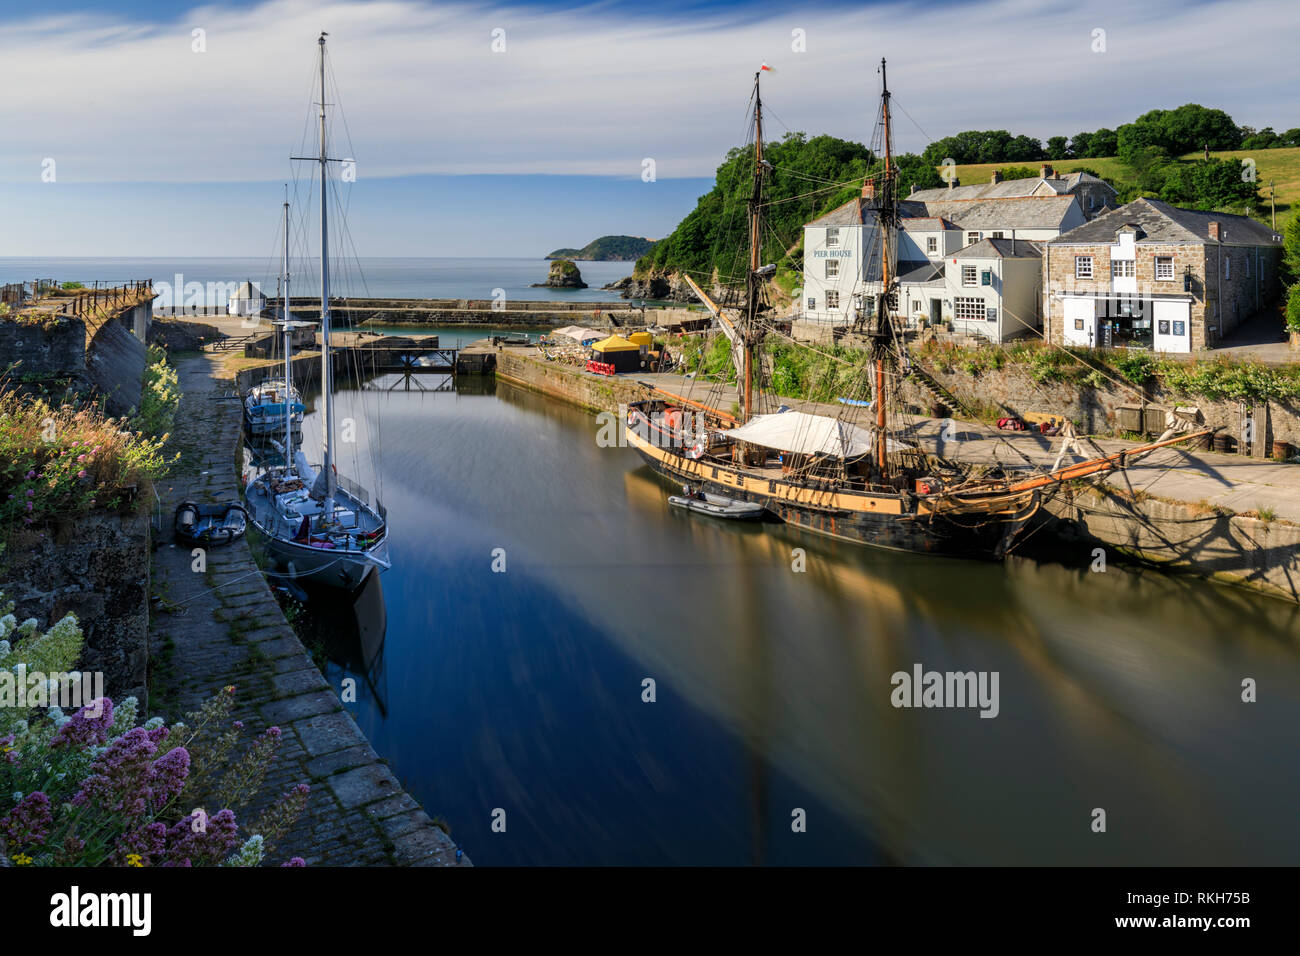 Charlestown Harbour in Cornwall. - Stock Image